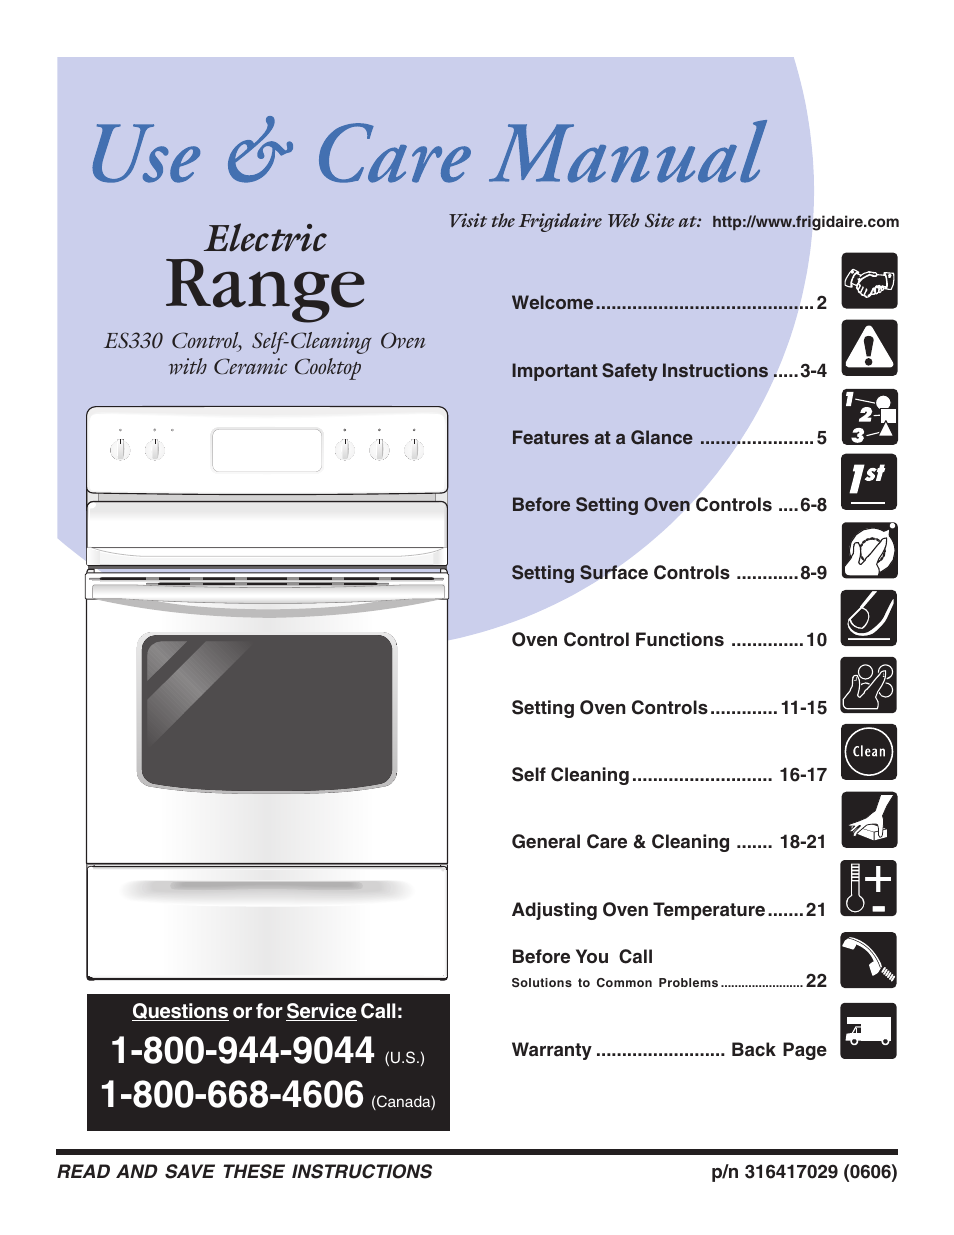 frigidaire es330 user manual 24 pages also for 316417029 rh manualsdir com Frigidaire Self-Cleaning Oven Manual Instruction Manual for Frigidaire Oven